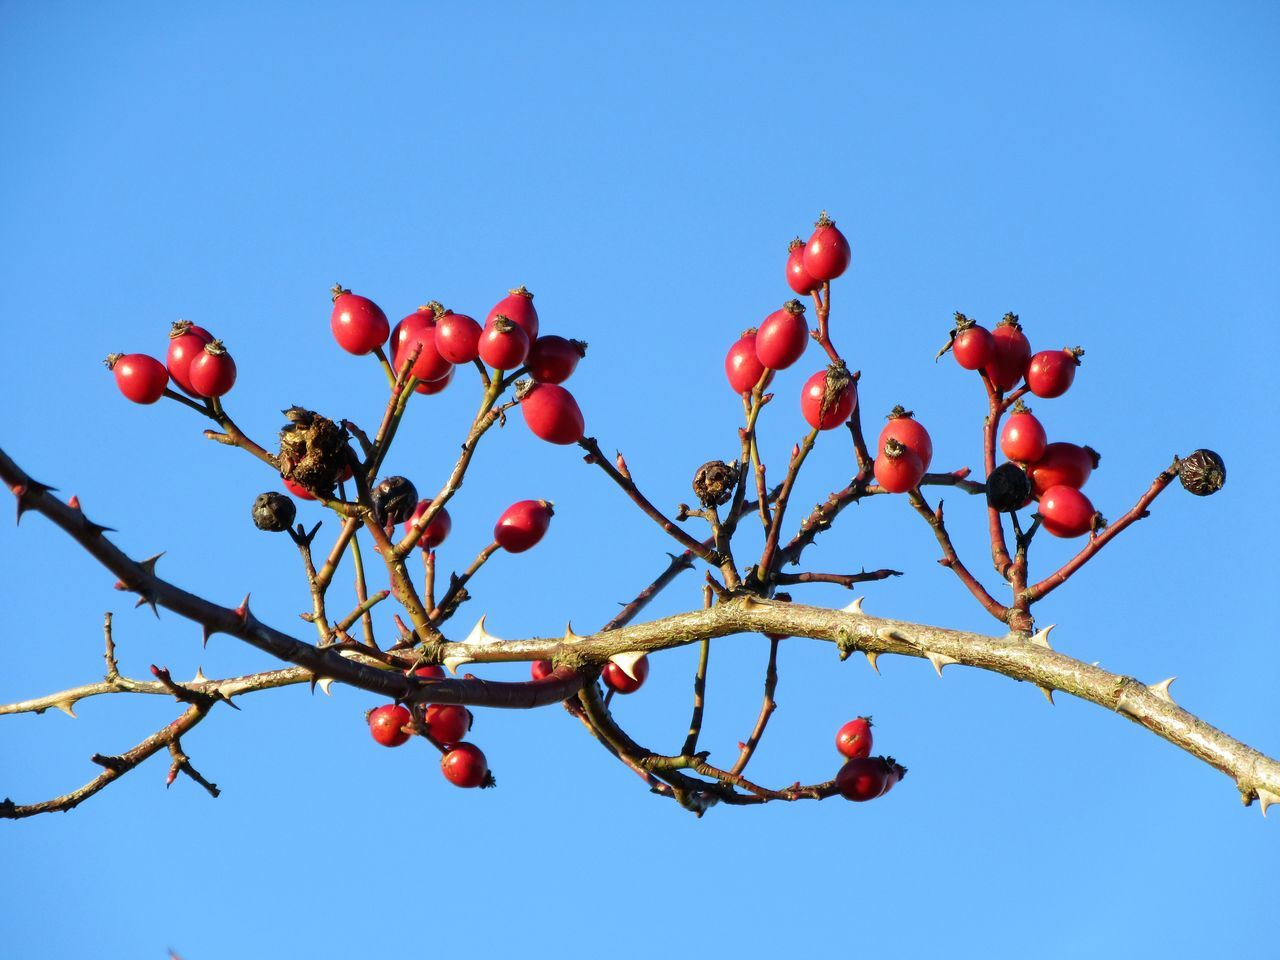 Rosehips against a blue sky Beauty In Nature Blue Sky Clear Sky Day Fruit Low Angle View Nature No People Outdoors Red Rose Hip Rose Hips Sky